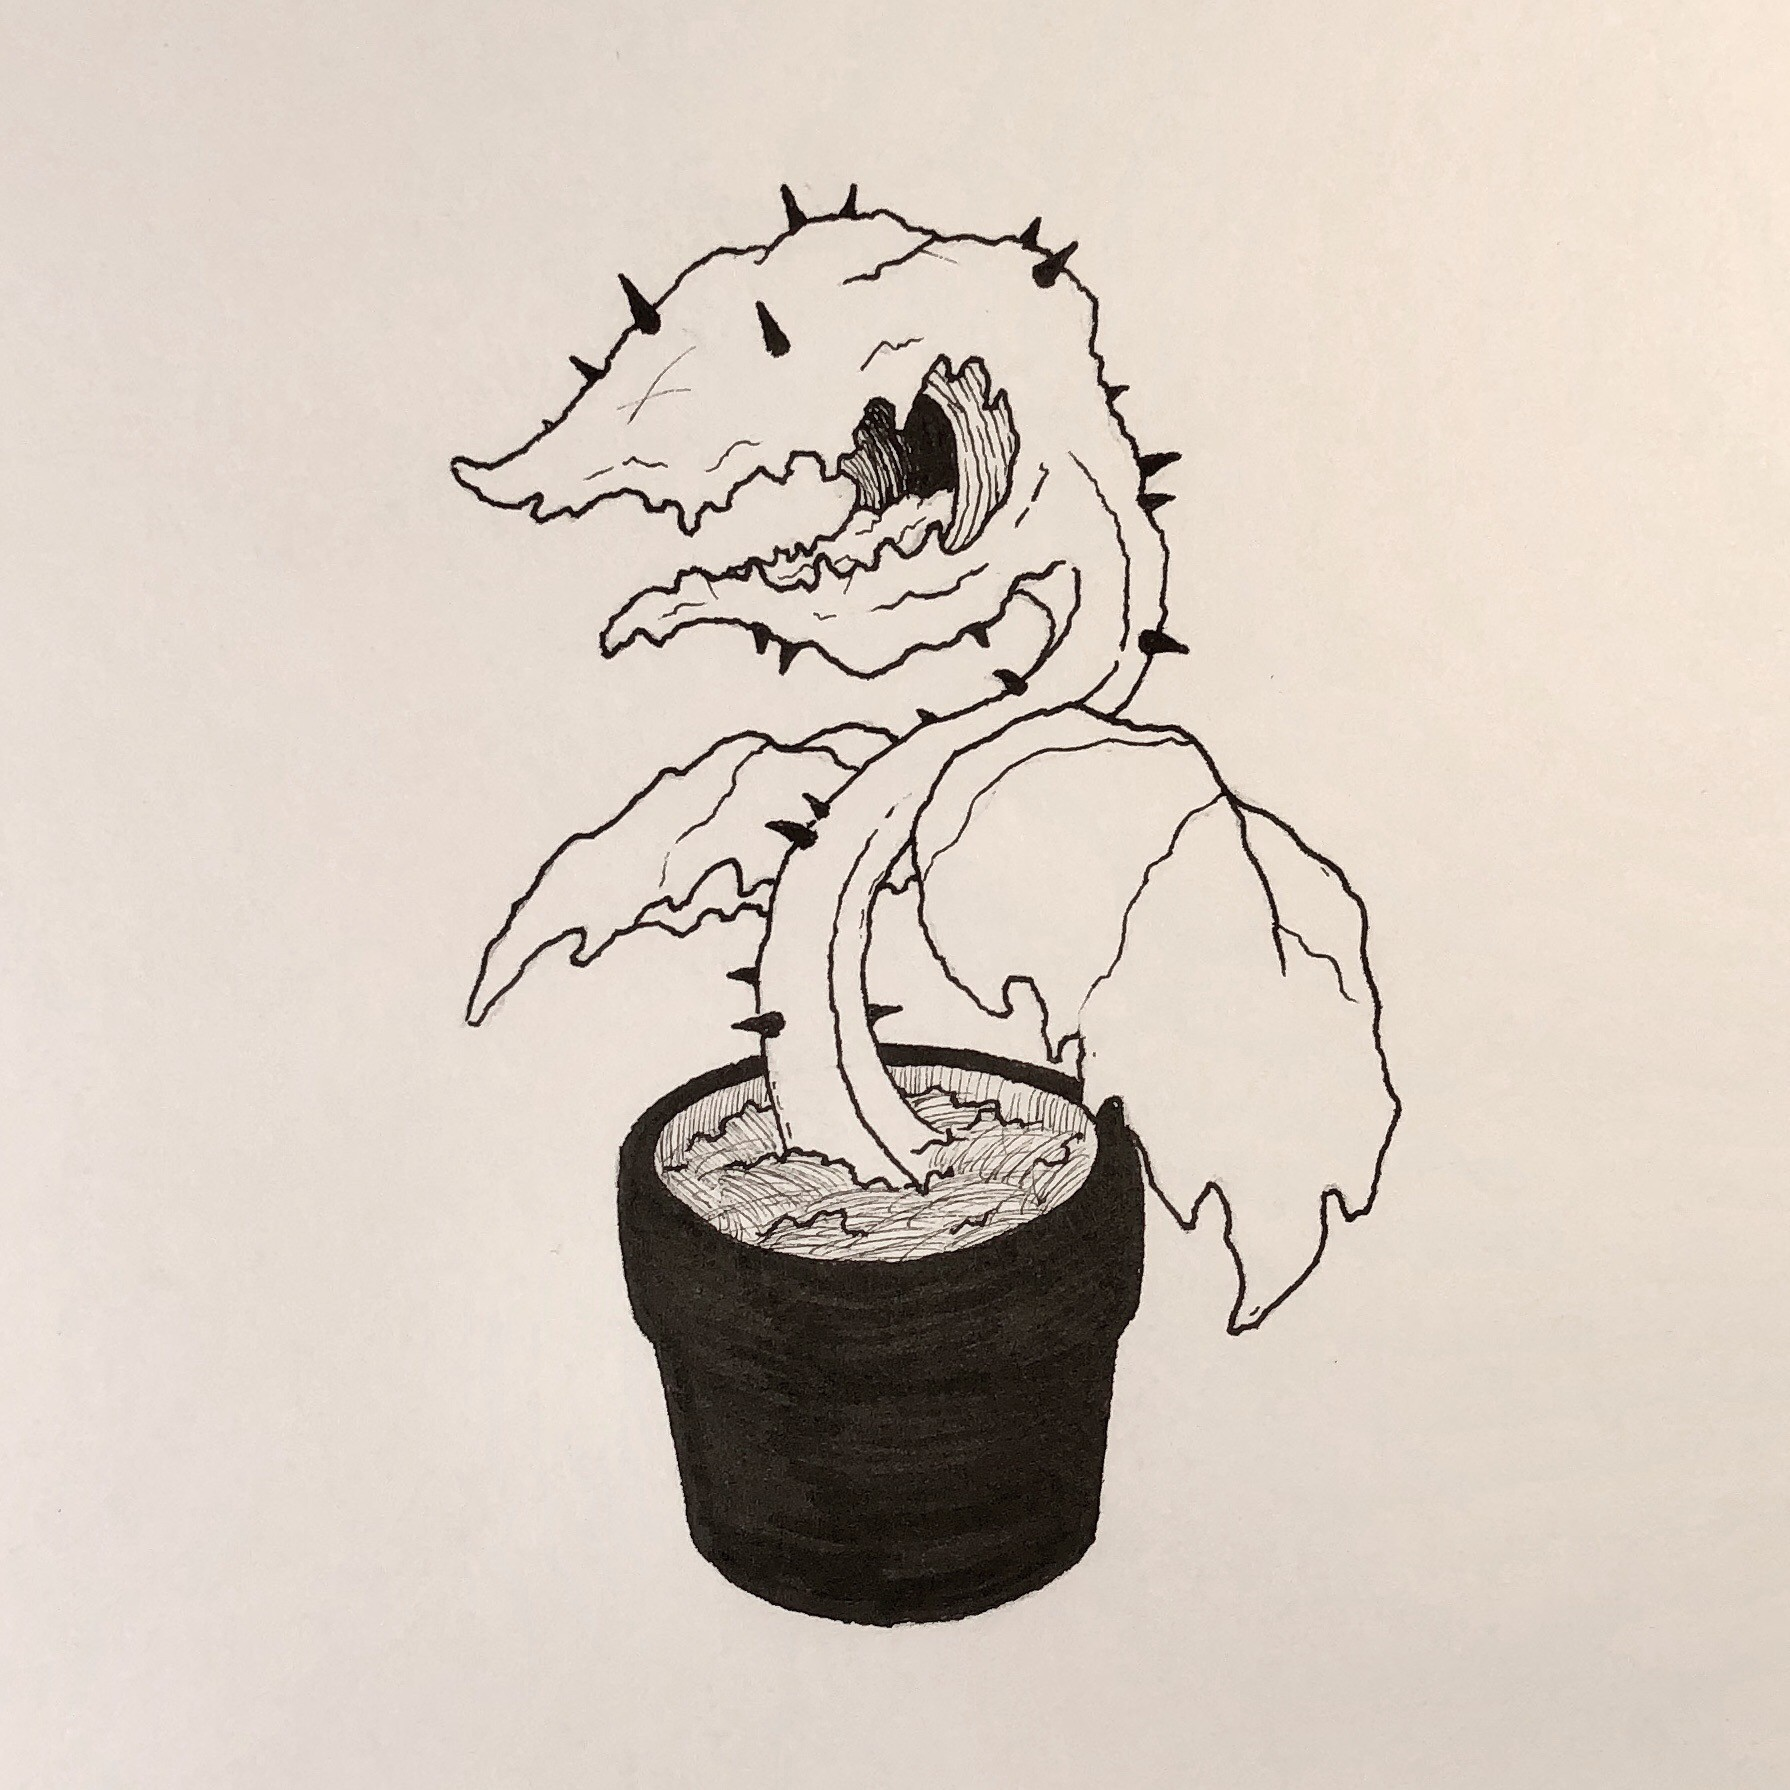 Inktober Day 25 - Prickly